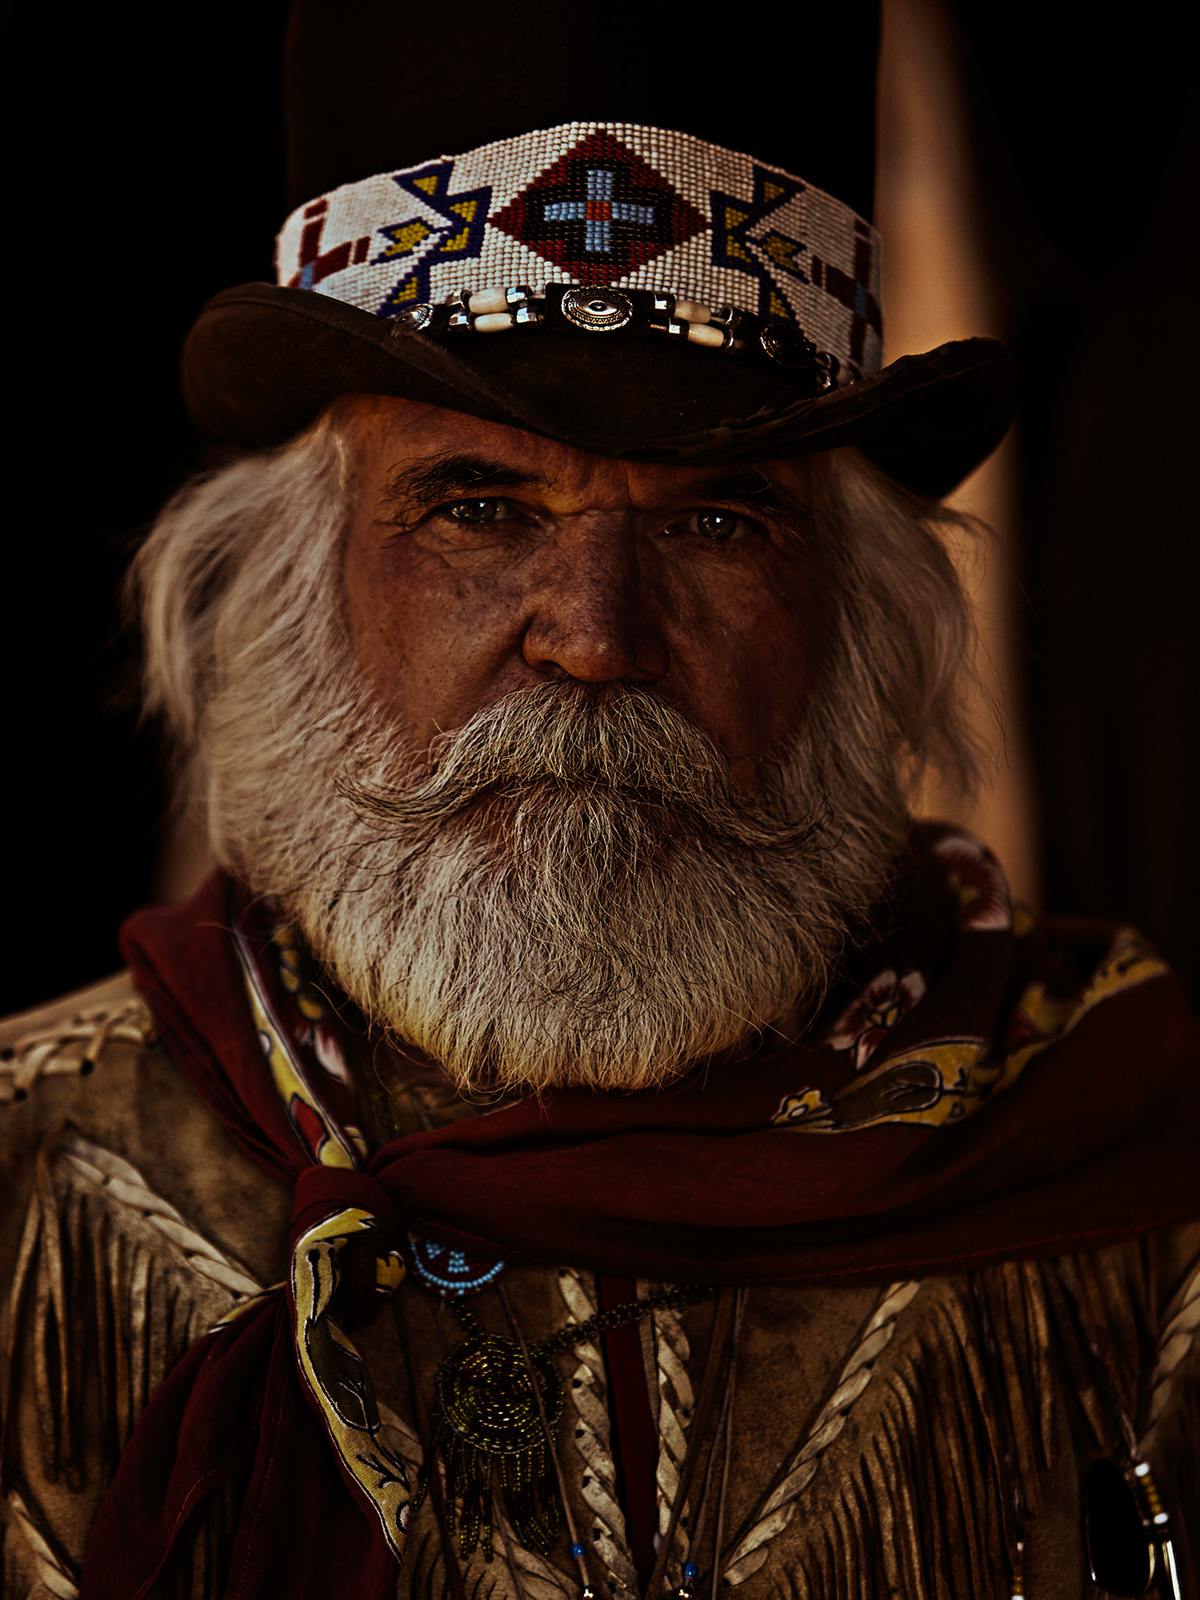 A Portrait Series American Stuntmen Of The Wild West On